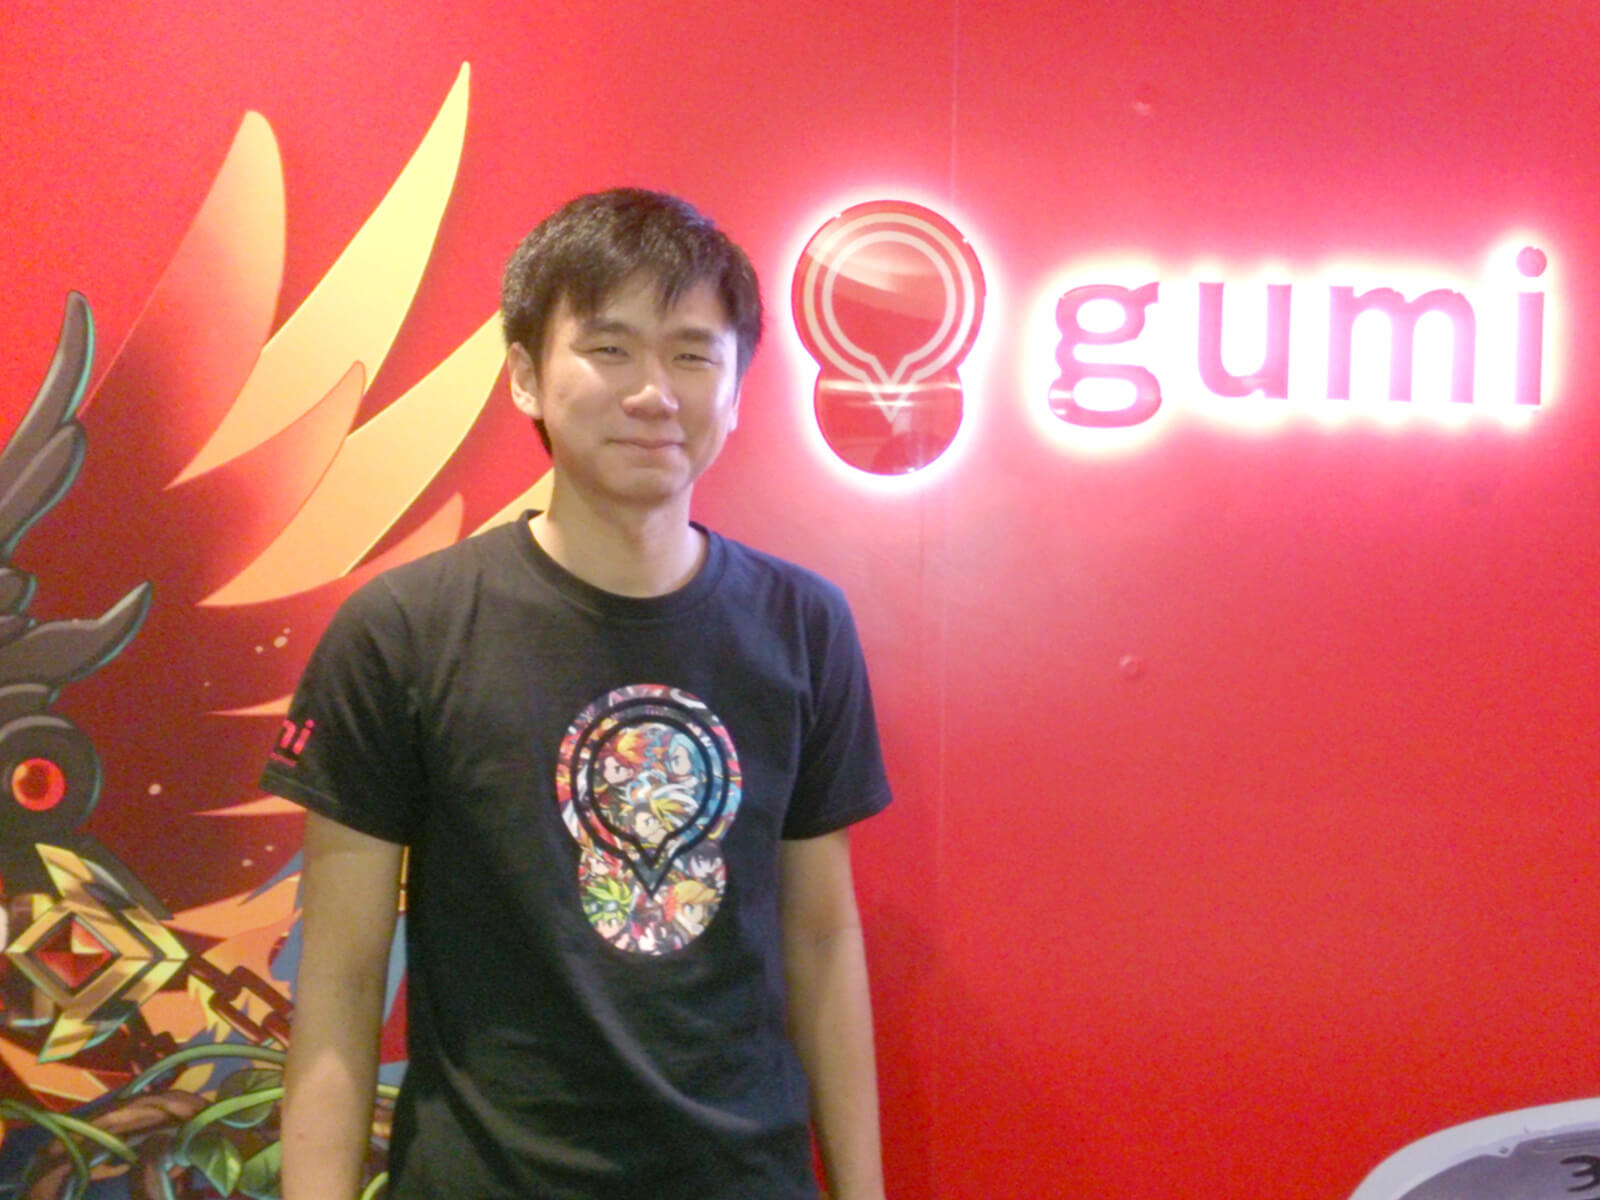 DigiPen graduate Soh Huajin stands in front of a red wall with a glowing logo for gumi Asia behind him